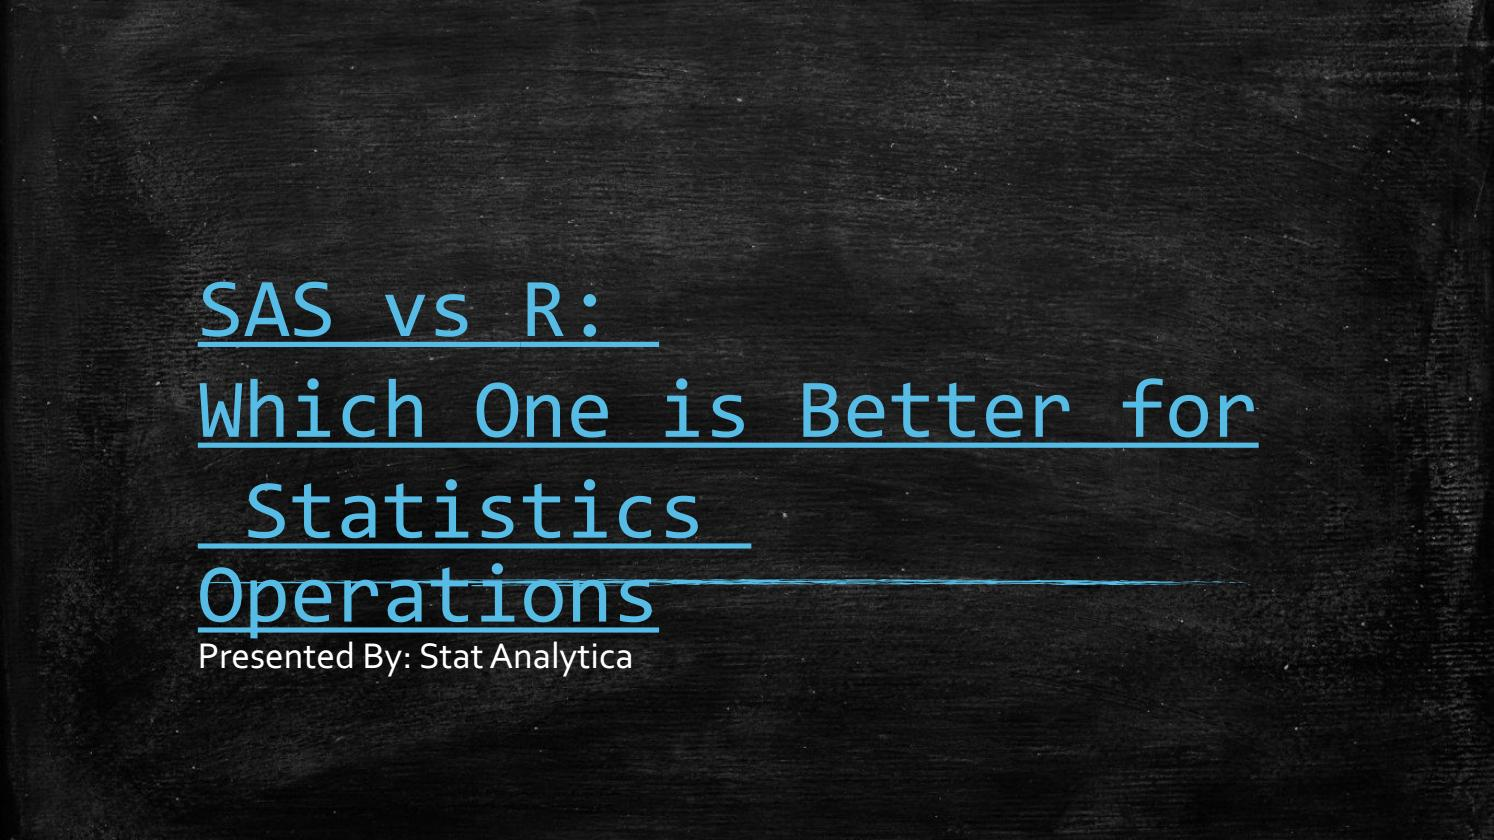 SAS vs R: Which One is Better for Statistics Operations by